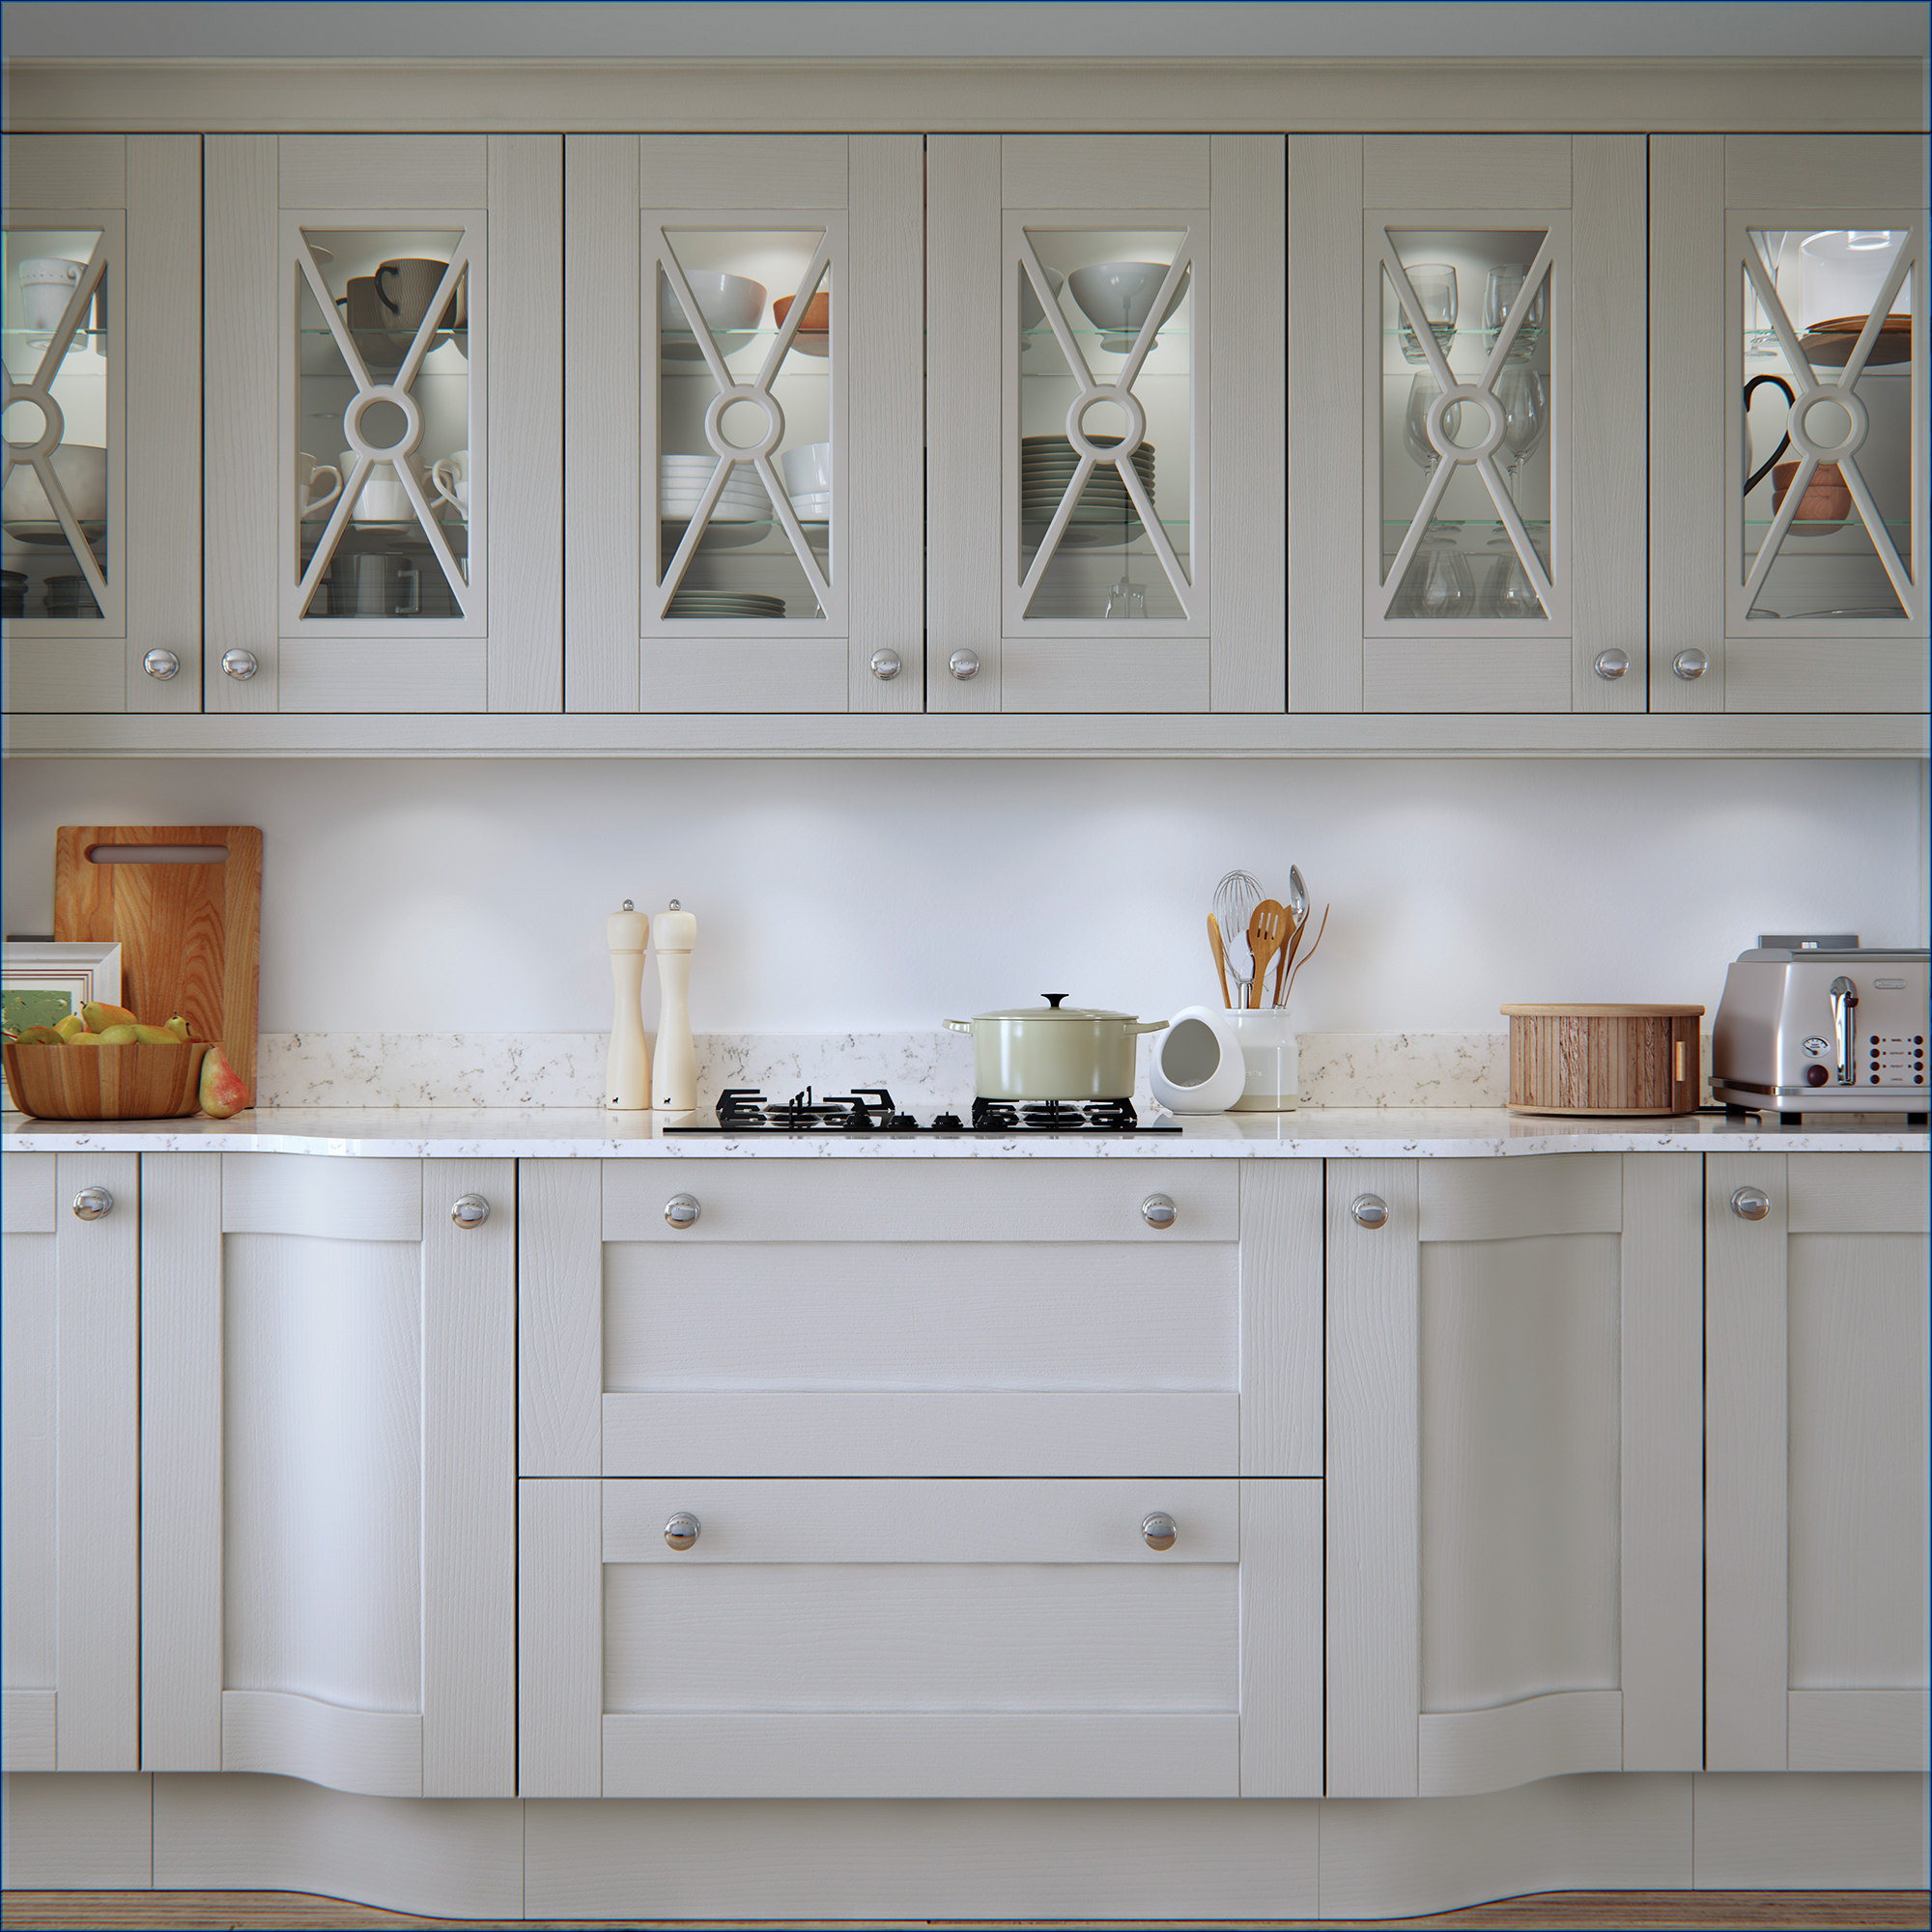 Light Painted Cabinets Kitchen: Madison Light Grey Painted Kitchen Doors : Cheap Kitchen